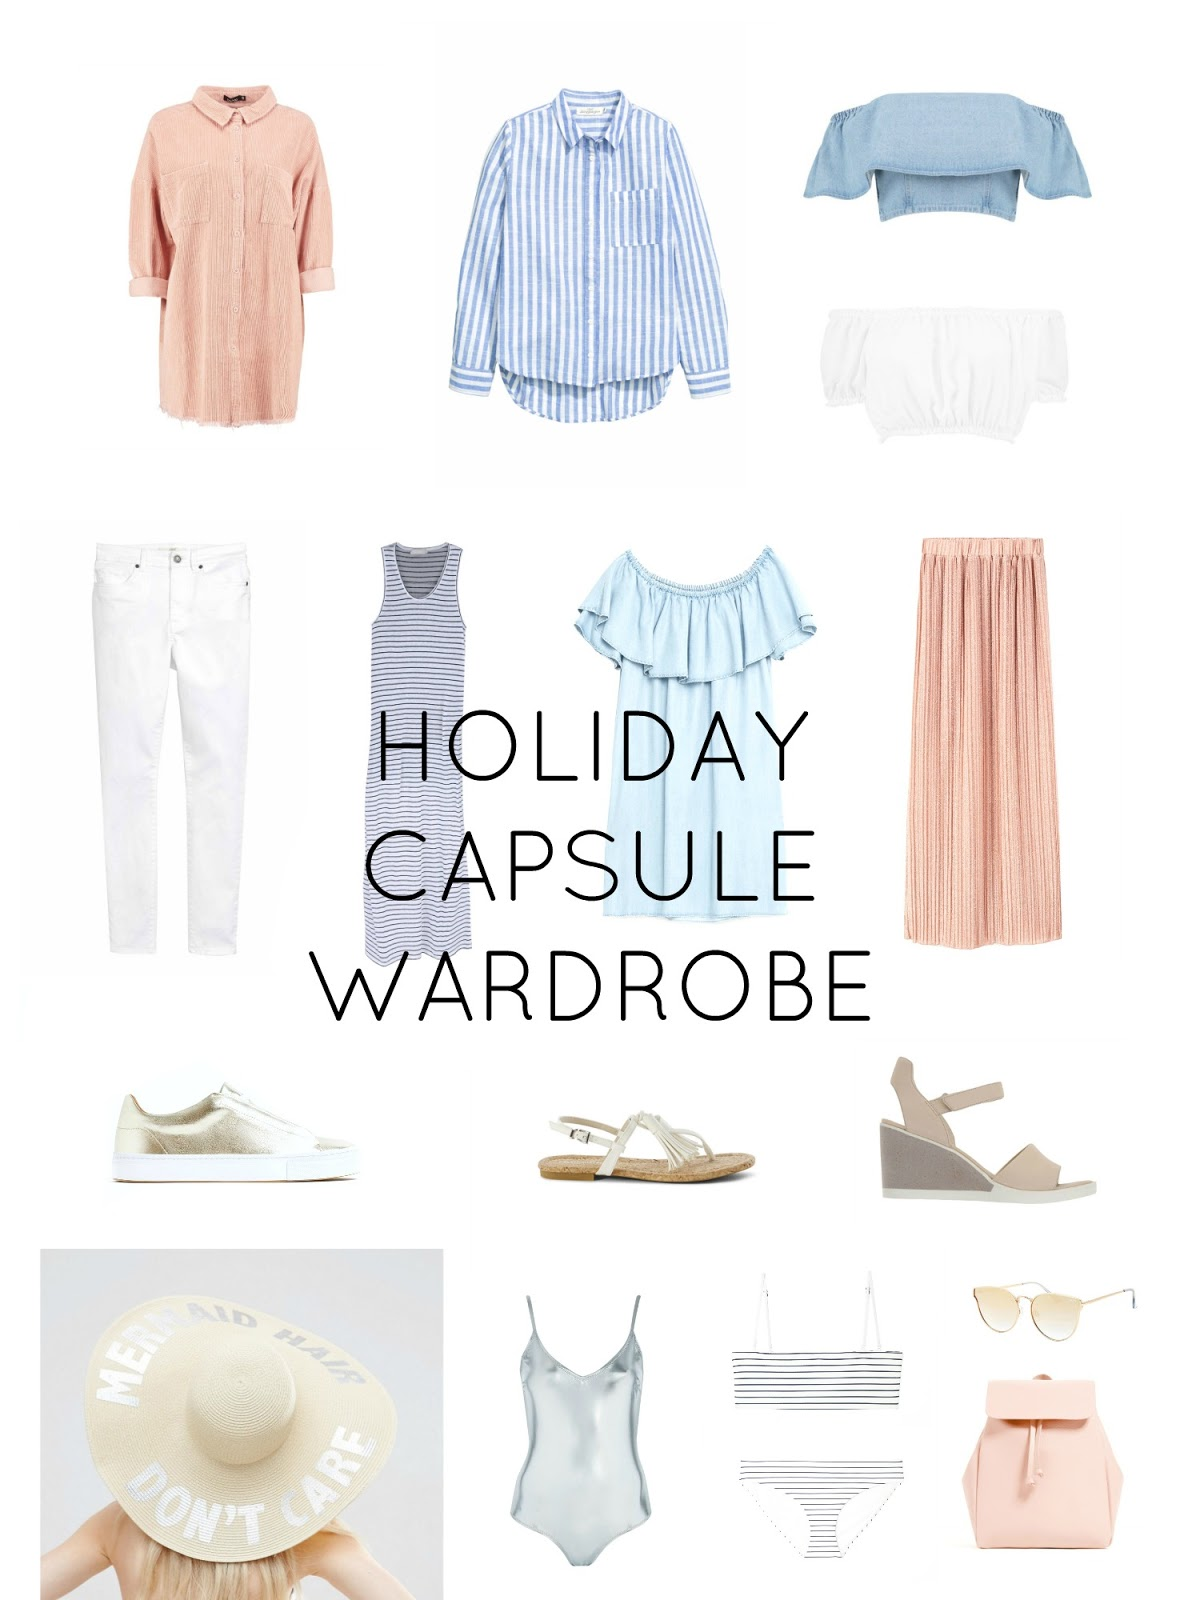 HOW TO CREATE A HOLIDAY CAPSULE WARDROBE WITH LYST